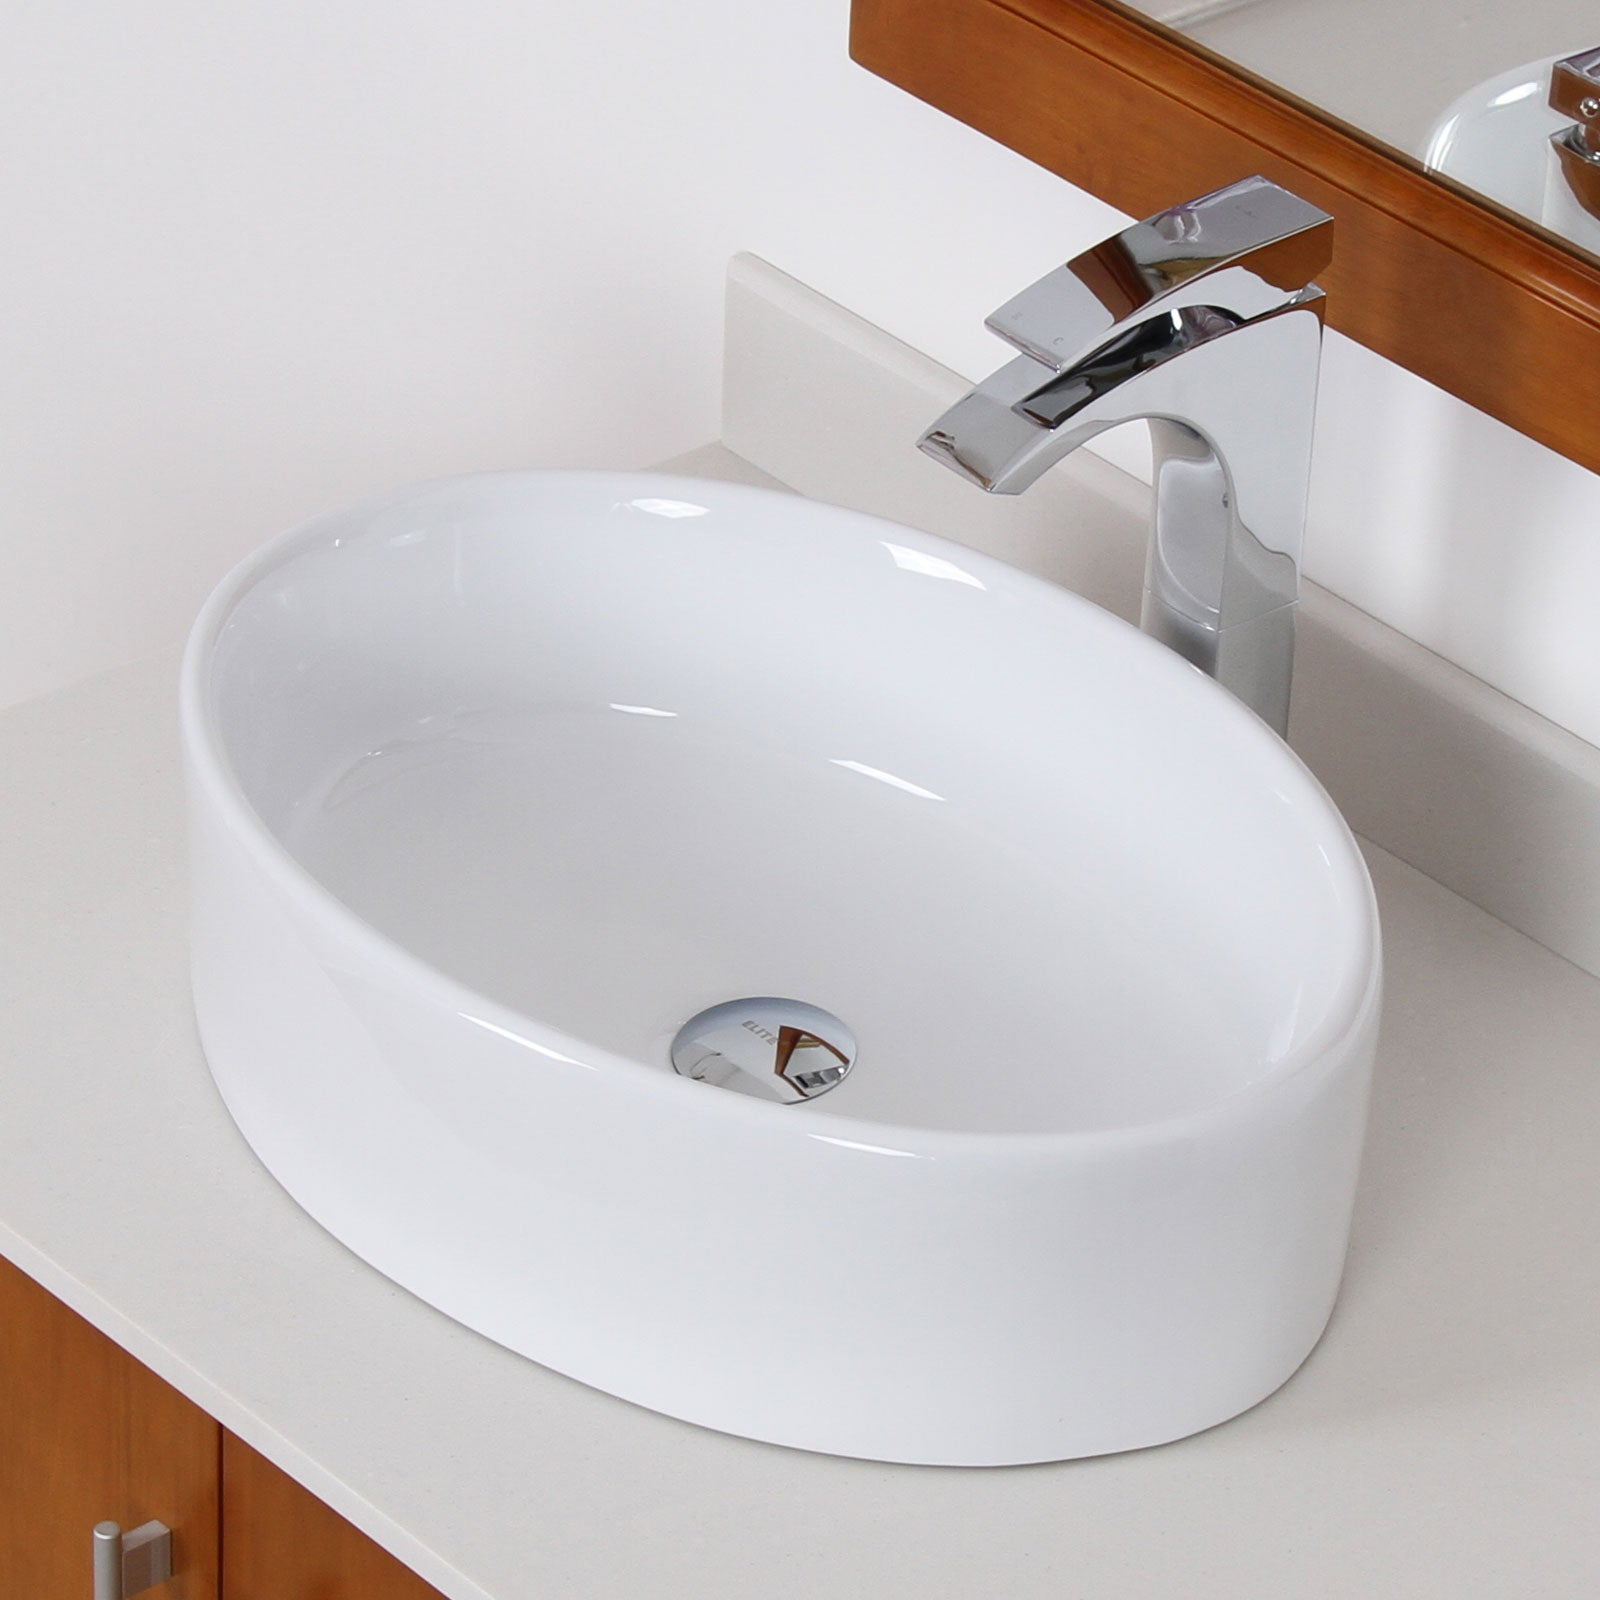 Elite White Ceramic Over The Counter Oval Bathroom Sink Free Shipping Today 7857192